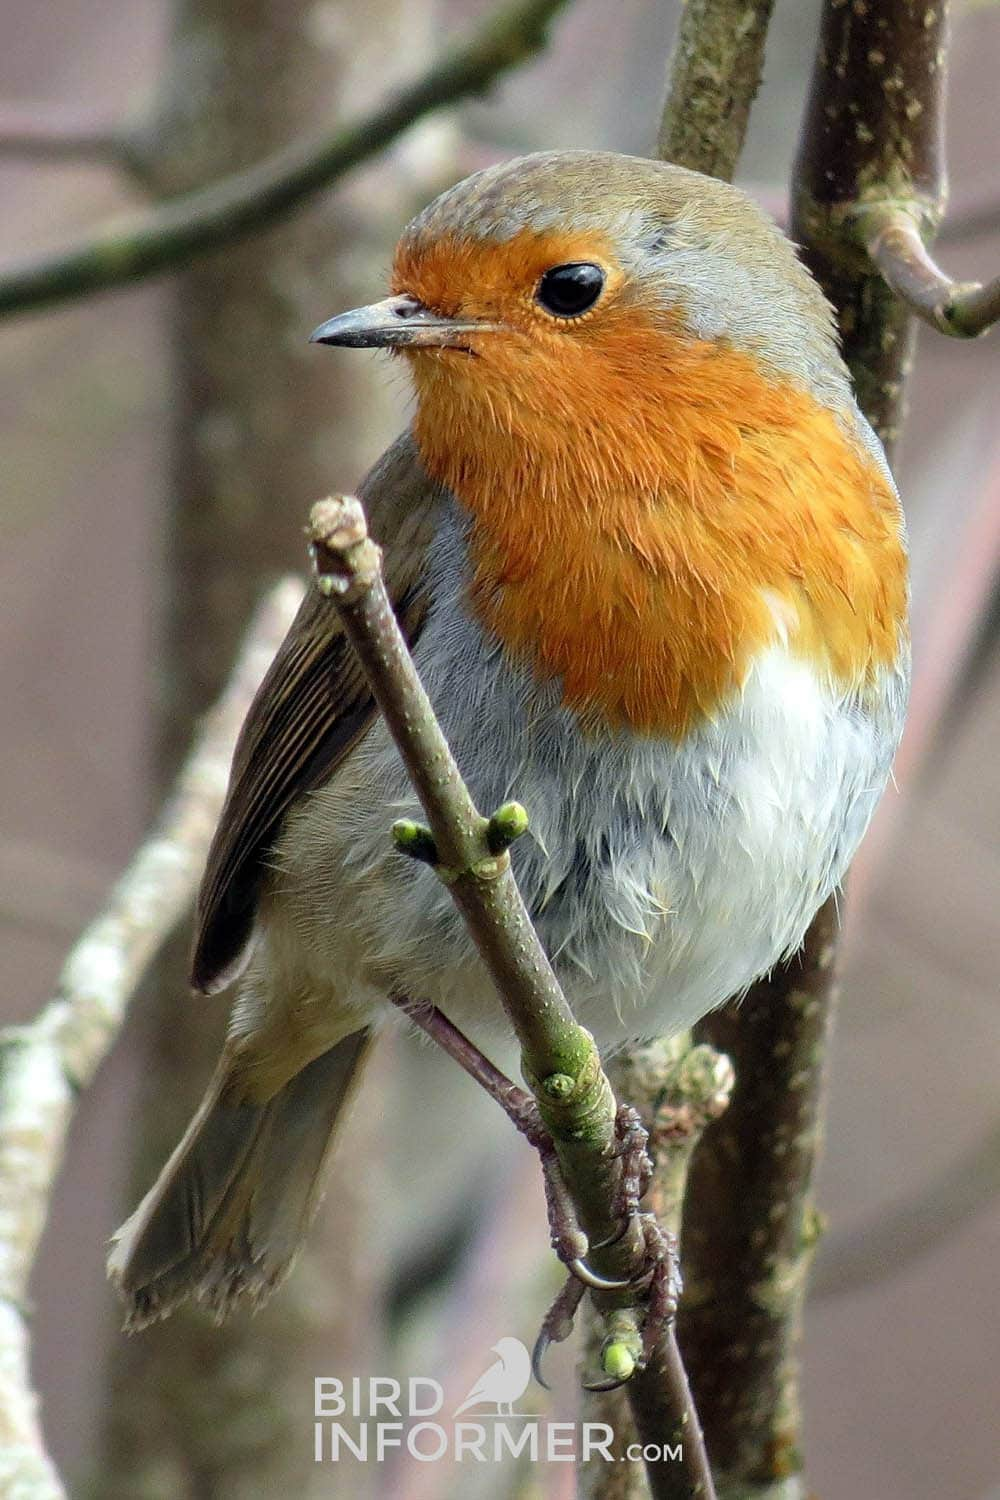 image of a robin during the winter